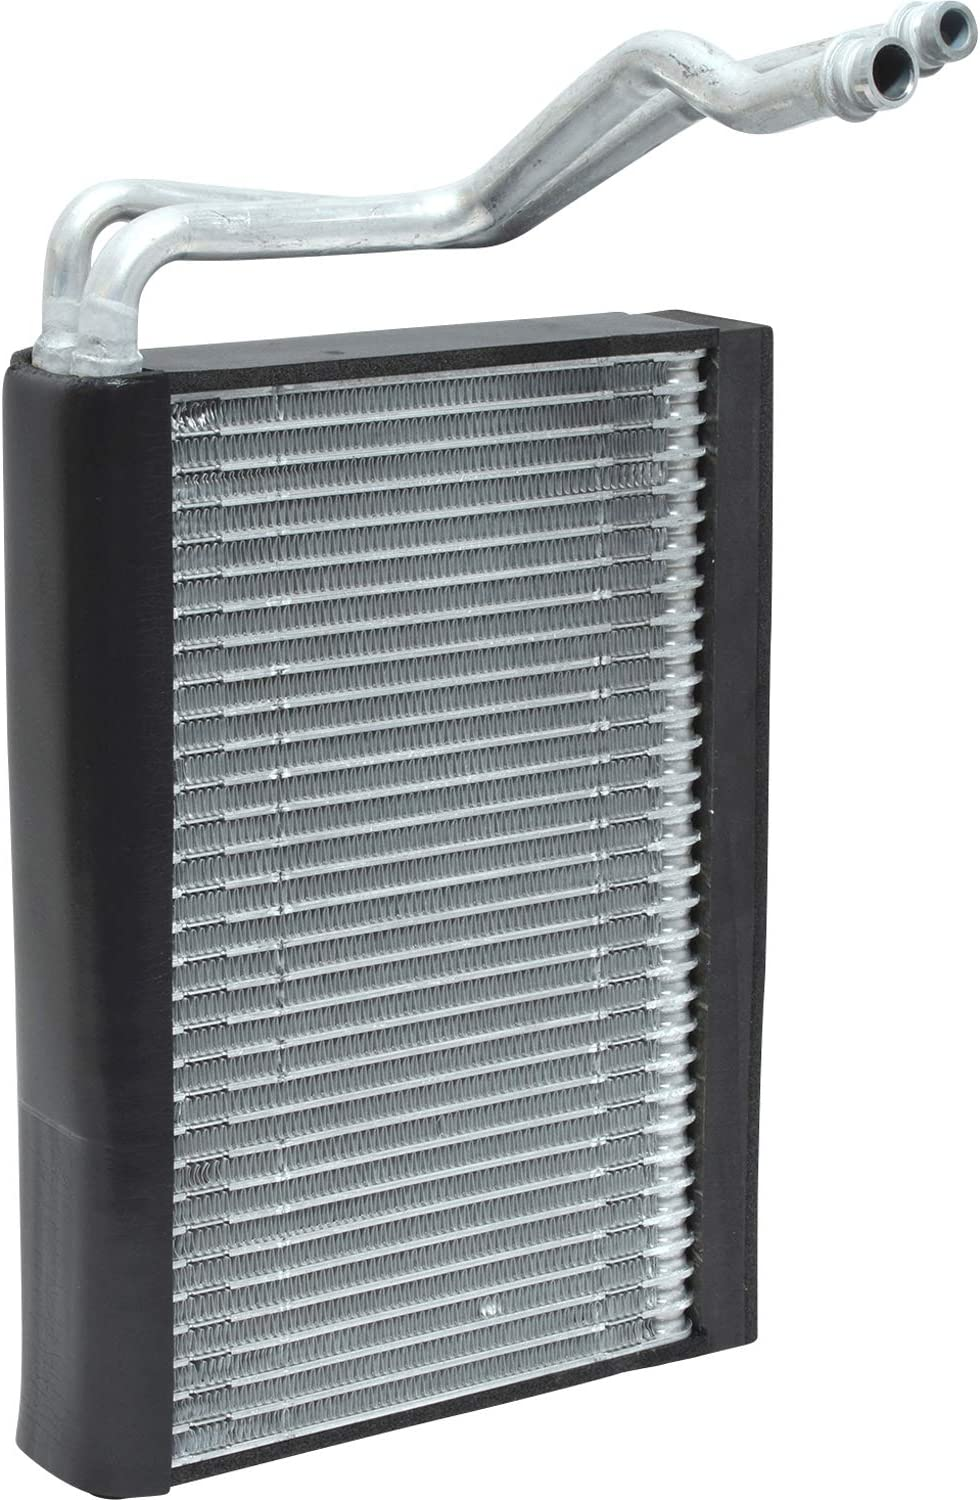 New A C Evaporator Core for 328i Large-scale sale 335i X1 325i 328 xDrive Max 90% OFF X3